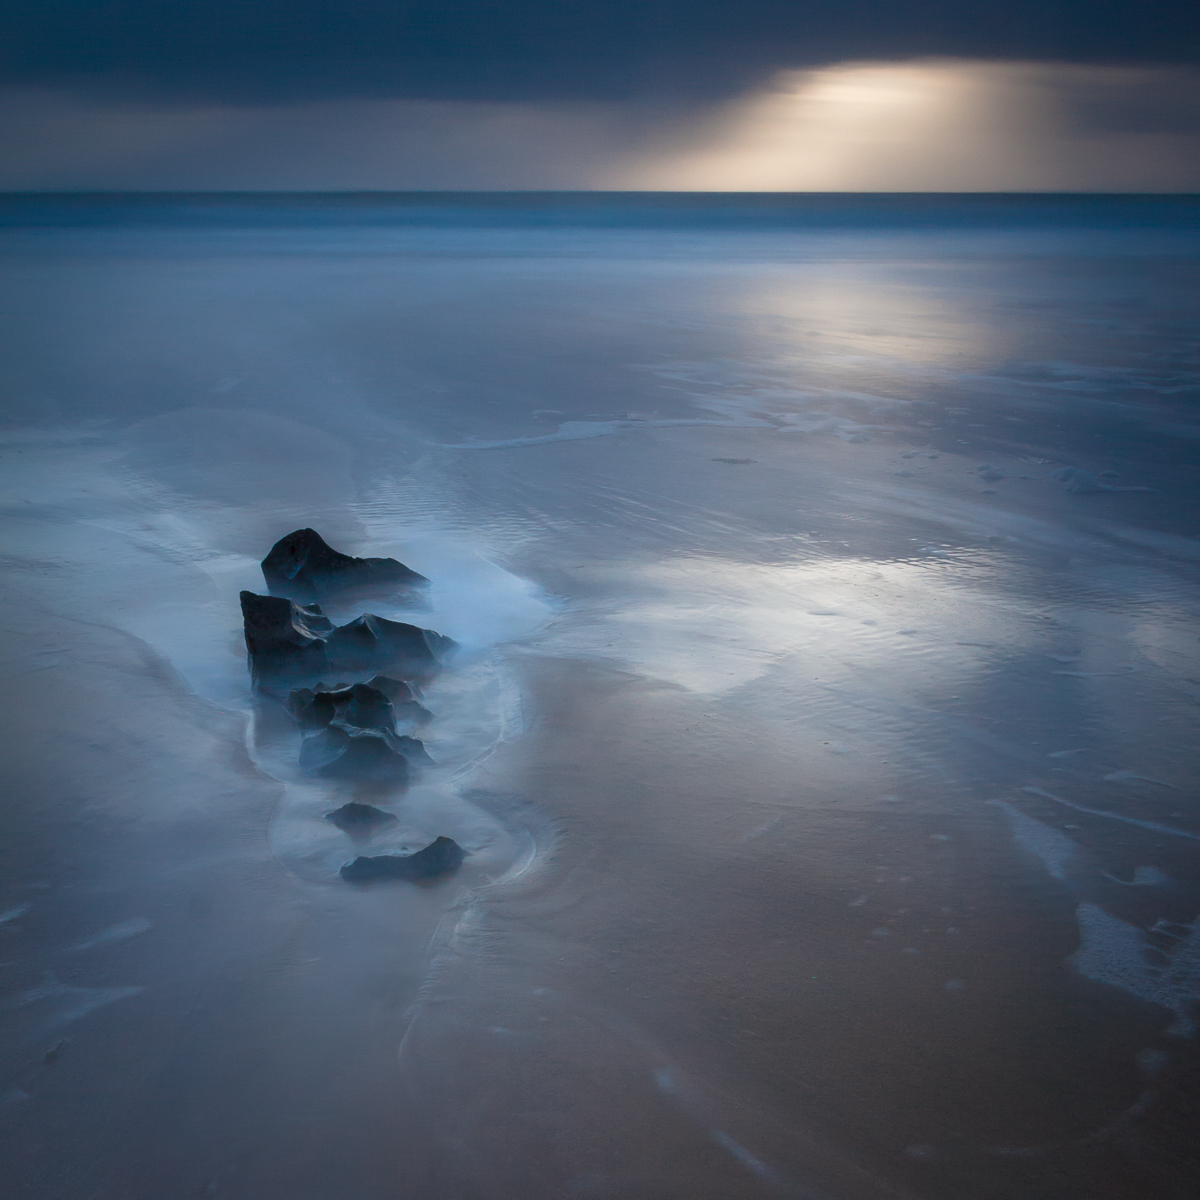 Mewslade Bay #2, January 2015